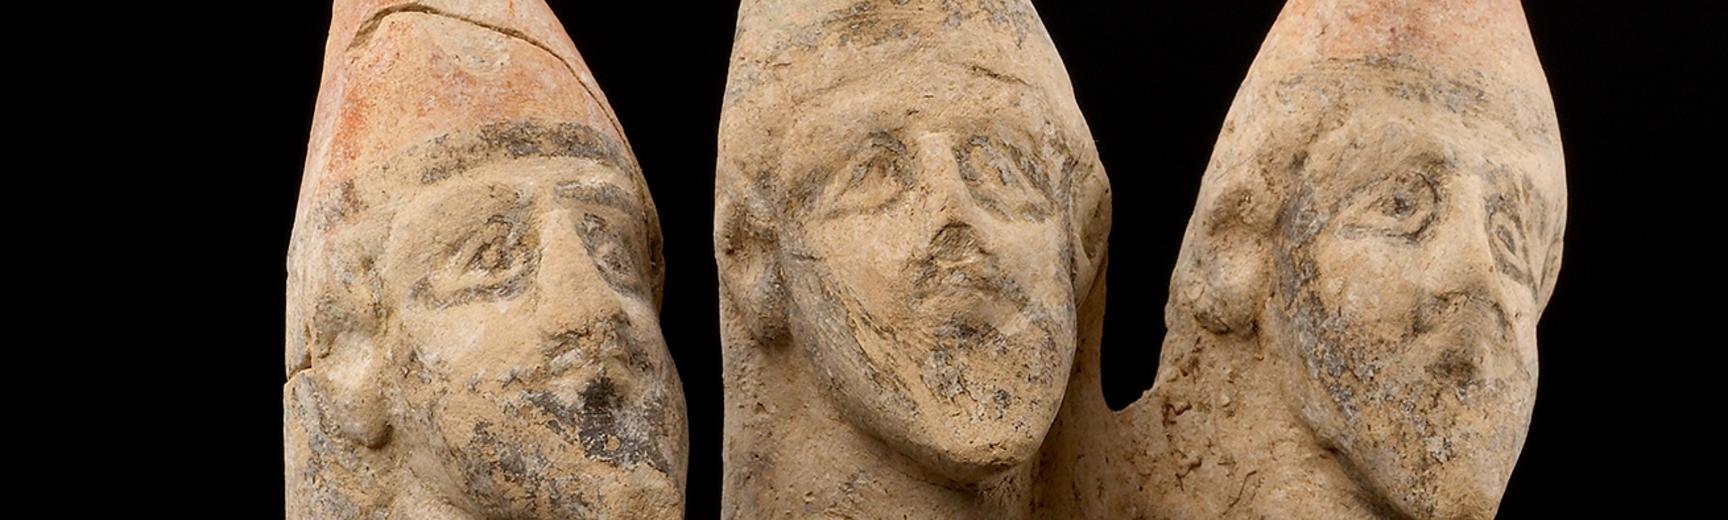 A stone sculpture of three male heads